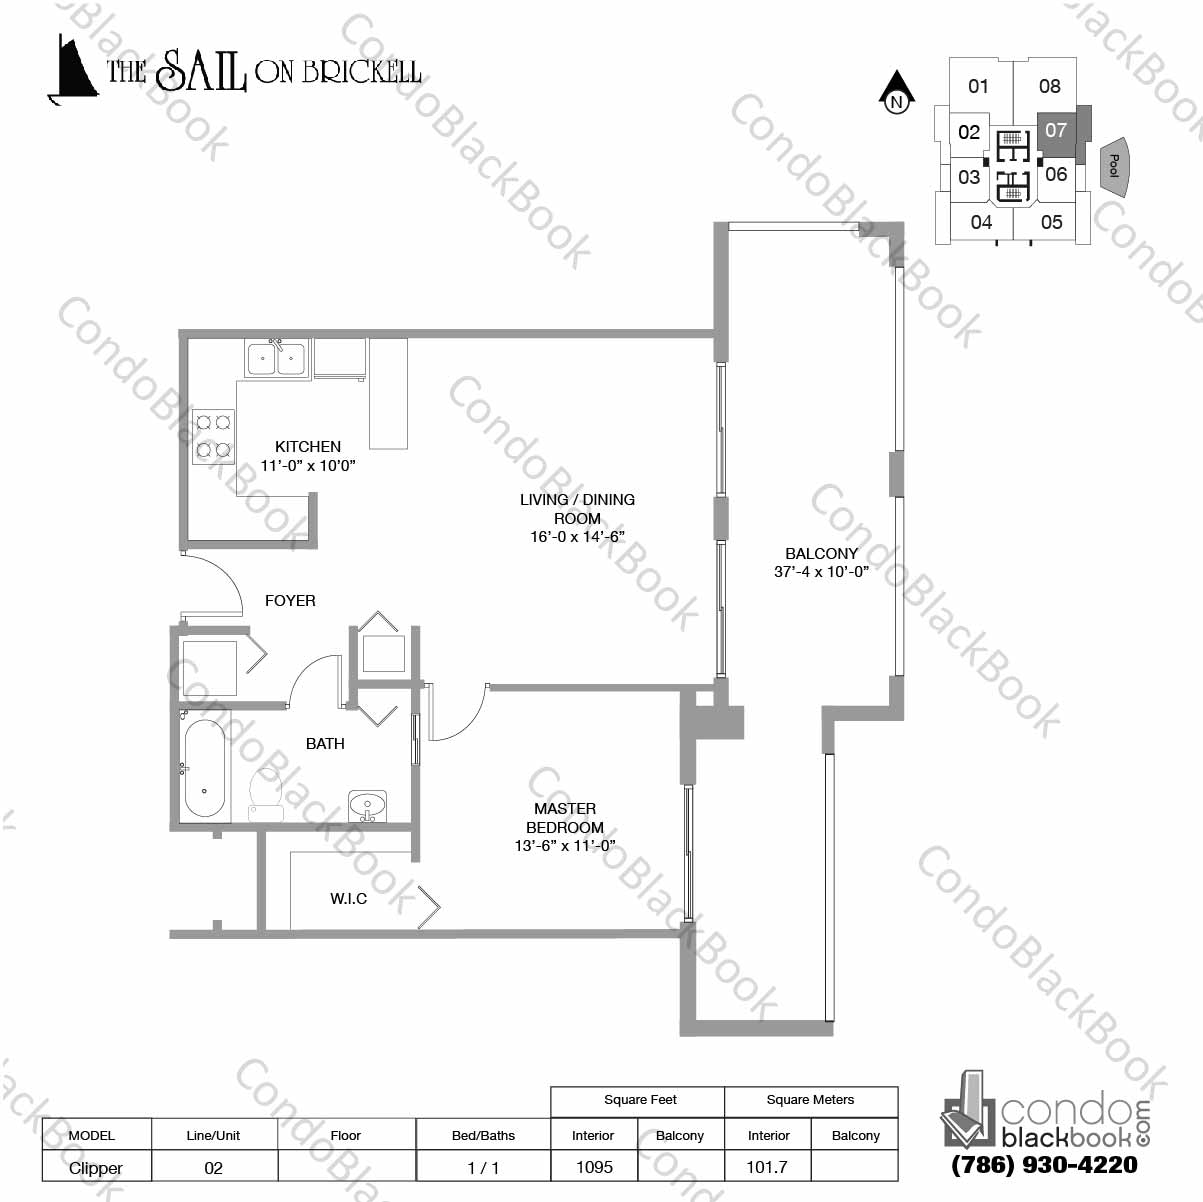 Floor plan for Sail on Brickell Brickell Miami, model Clipper, line 07, 2 / 2 bedrooms, 1095 sq ft